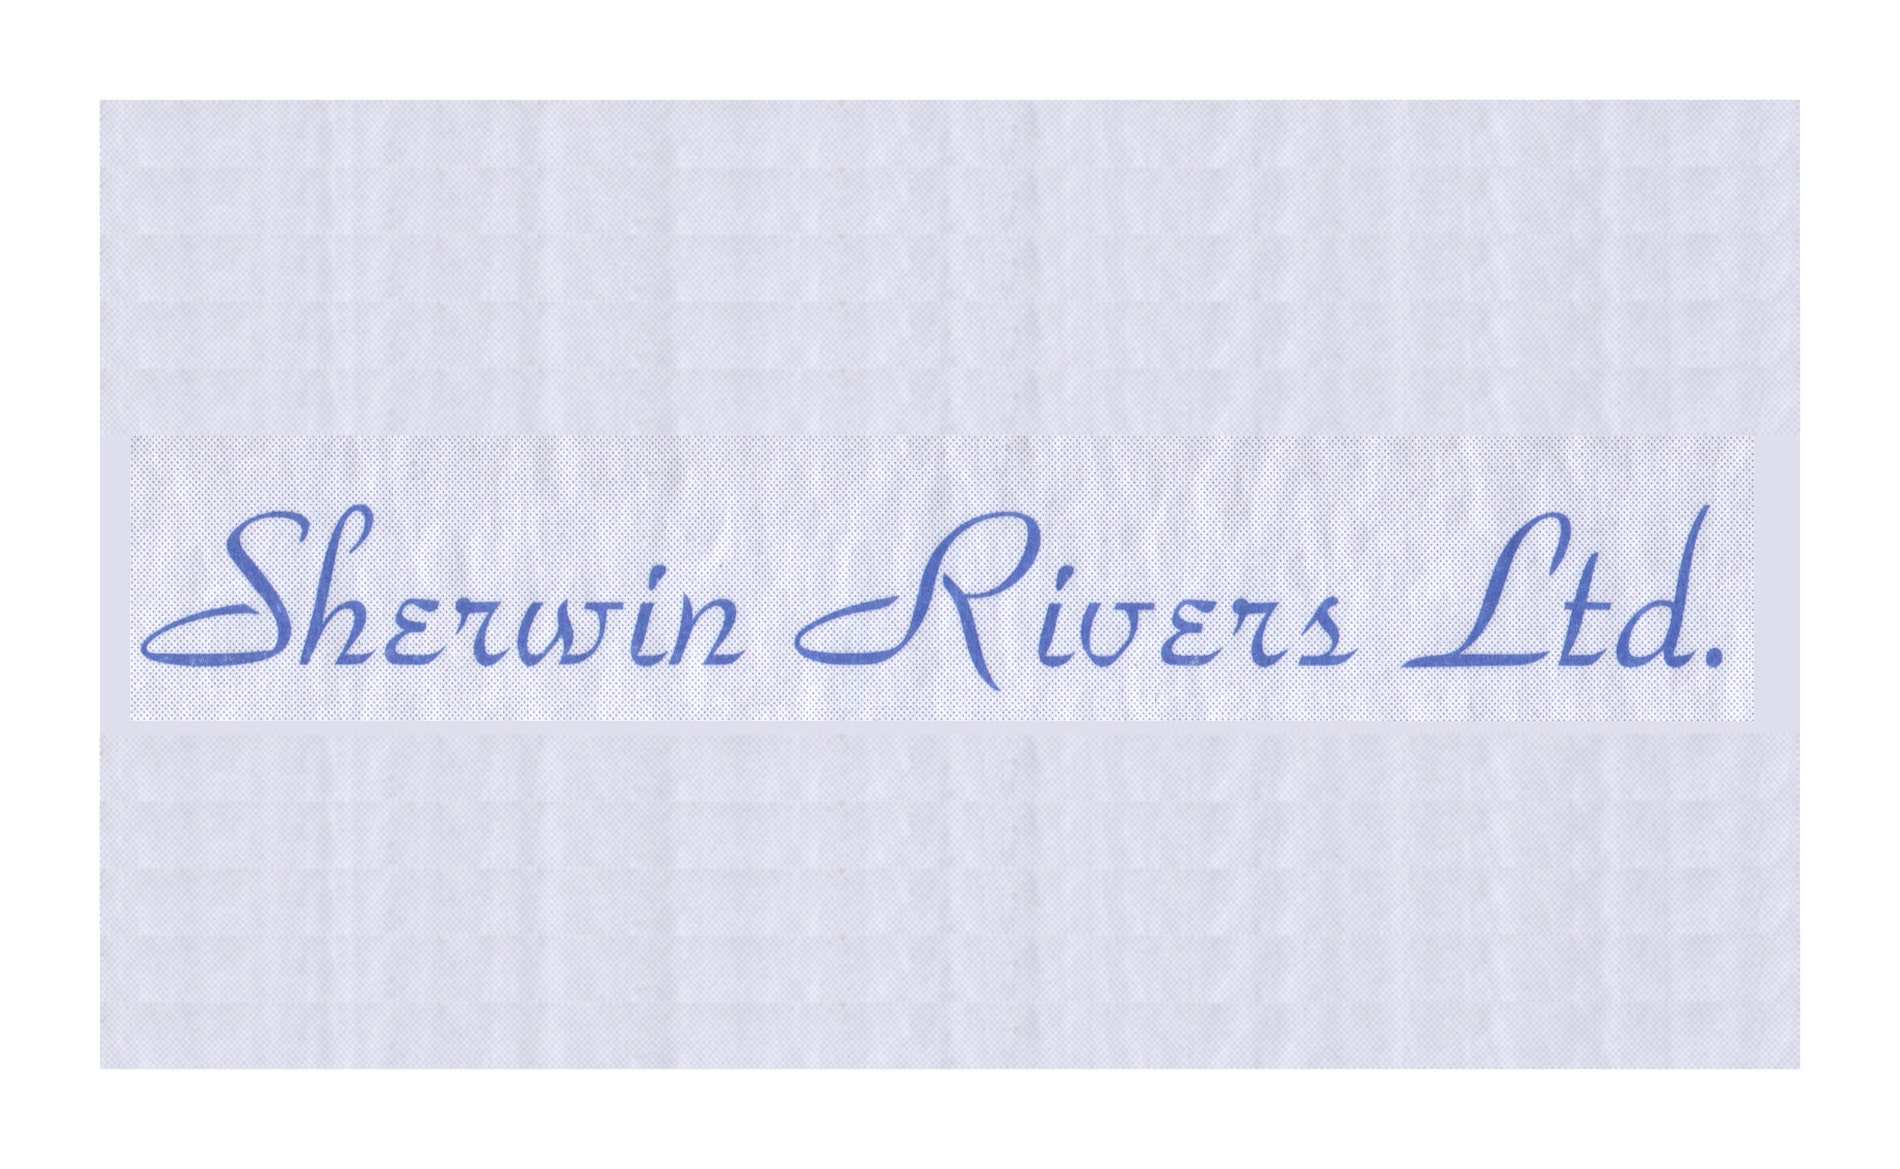 Graphic Design and Branding Services Sherwin Rivers Ltd - Logo Design 1980's